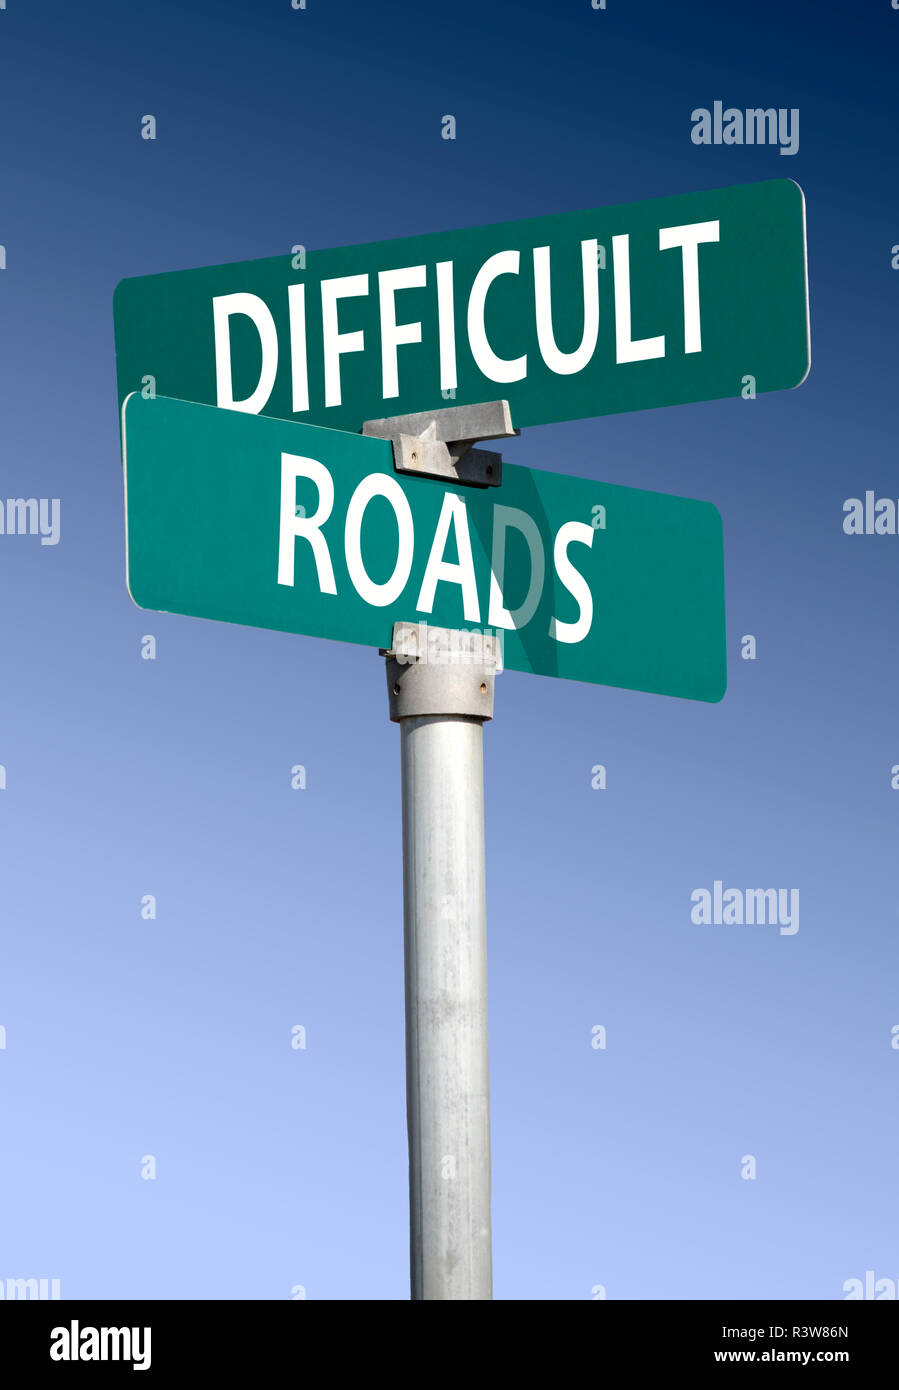 Difficult roads - Stock Image